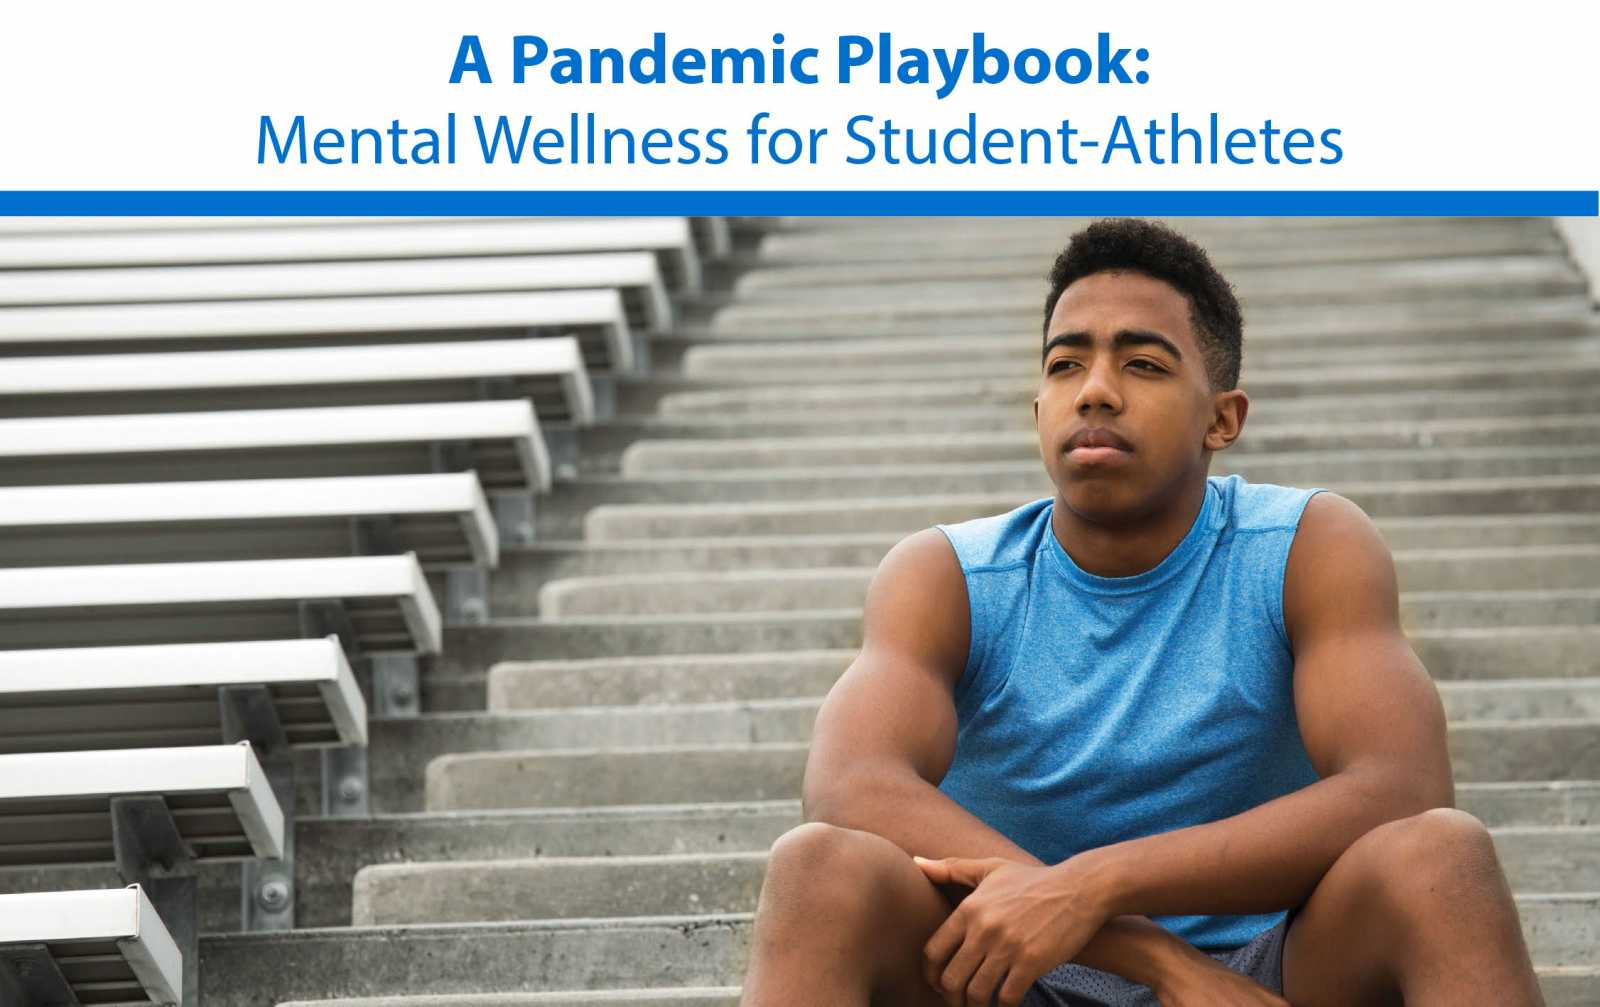 Mental Wellness Virtual Forum for Student-Athletes Set For Oct. 27